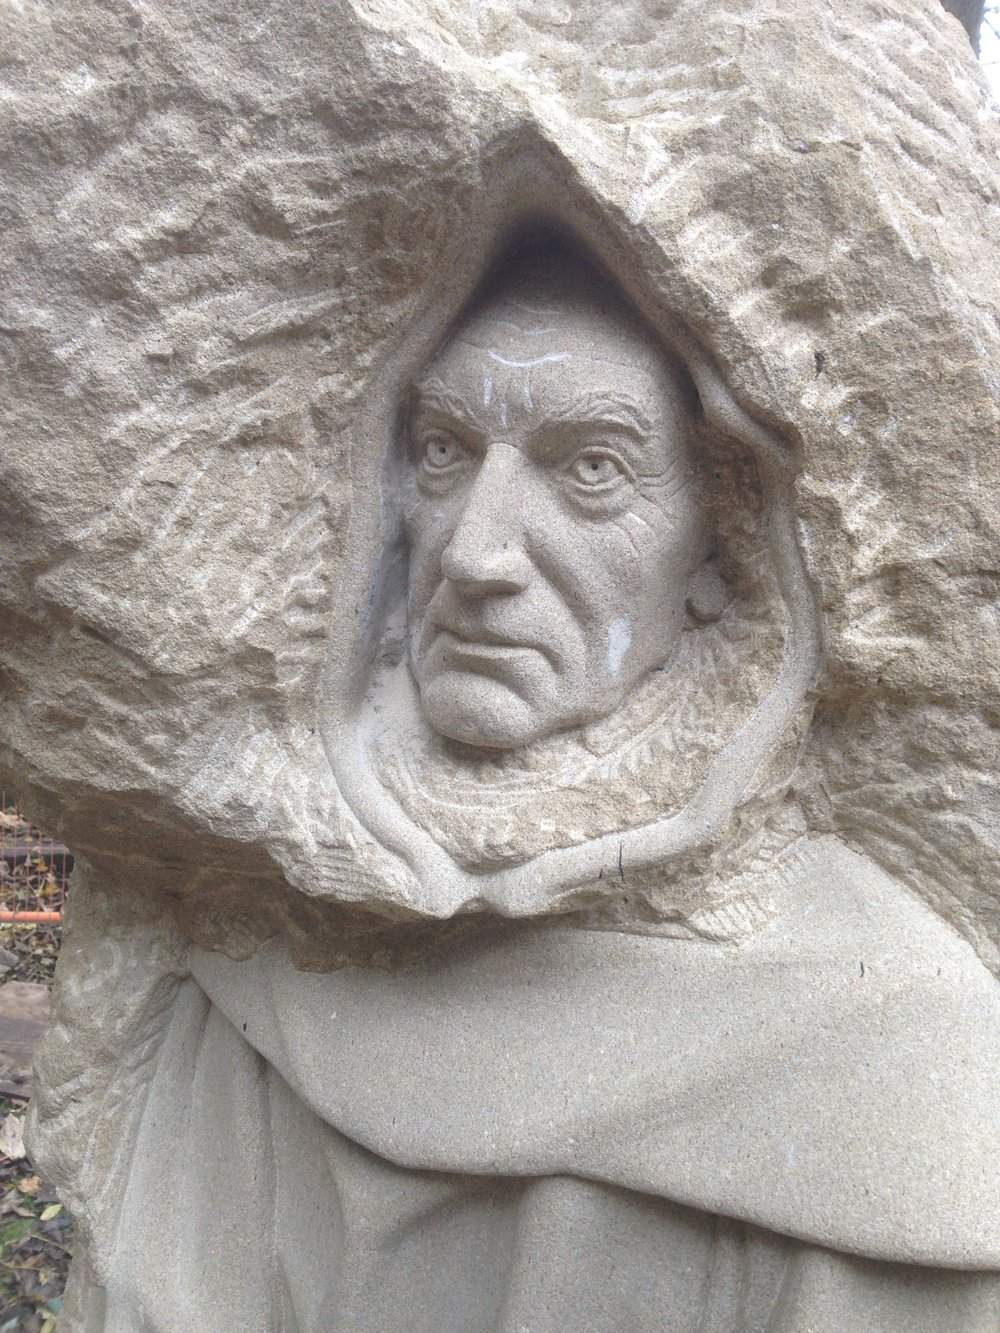 Monk in York stone